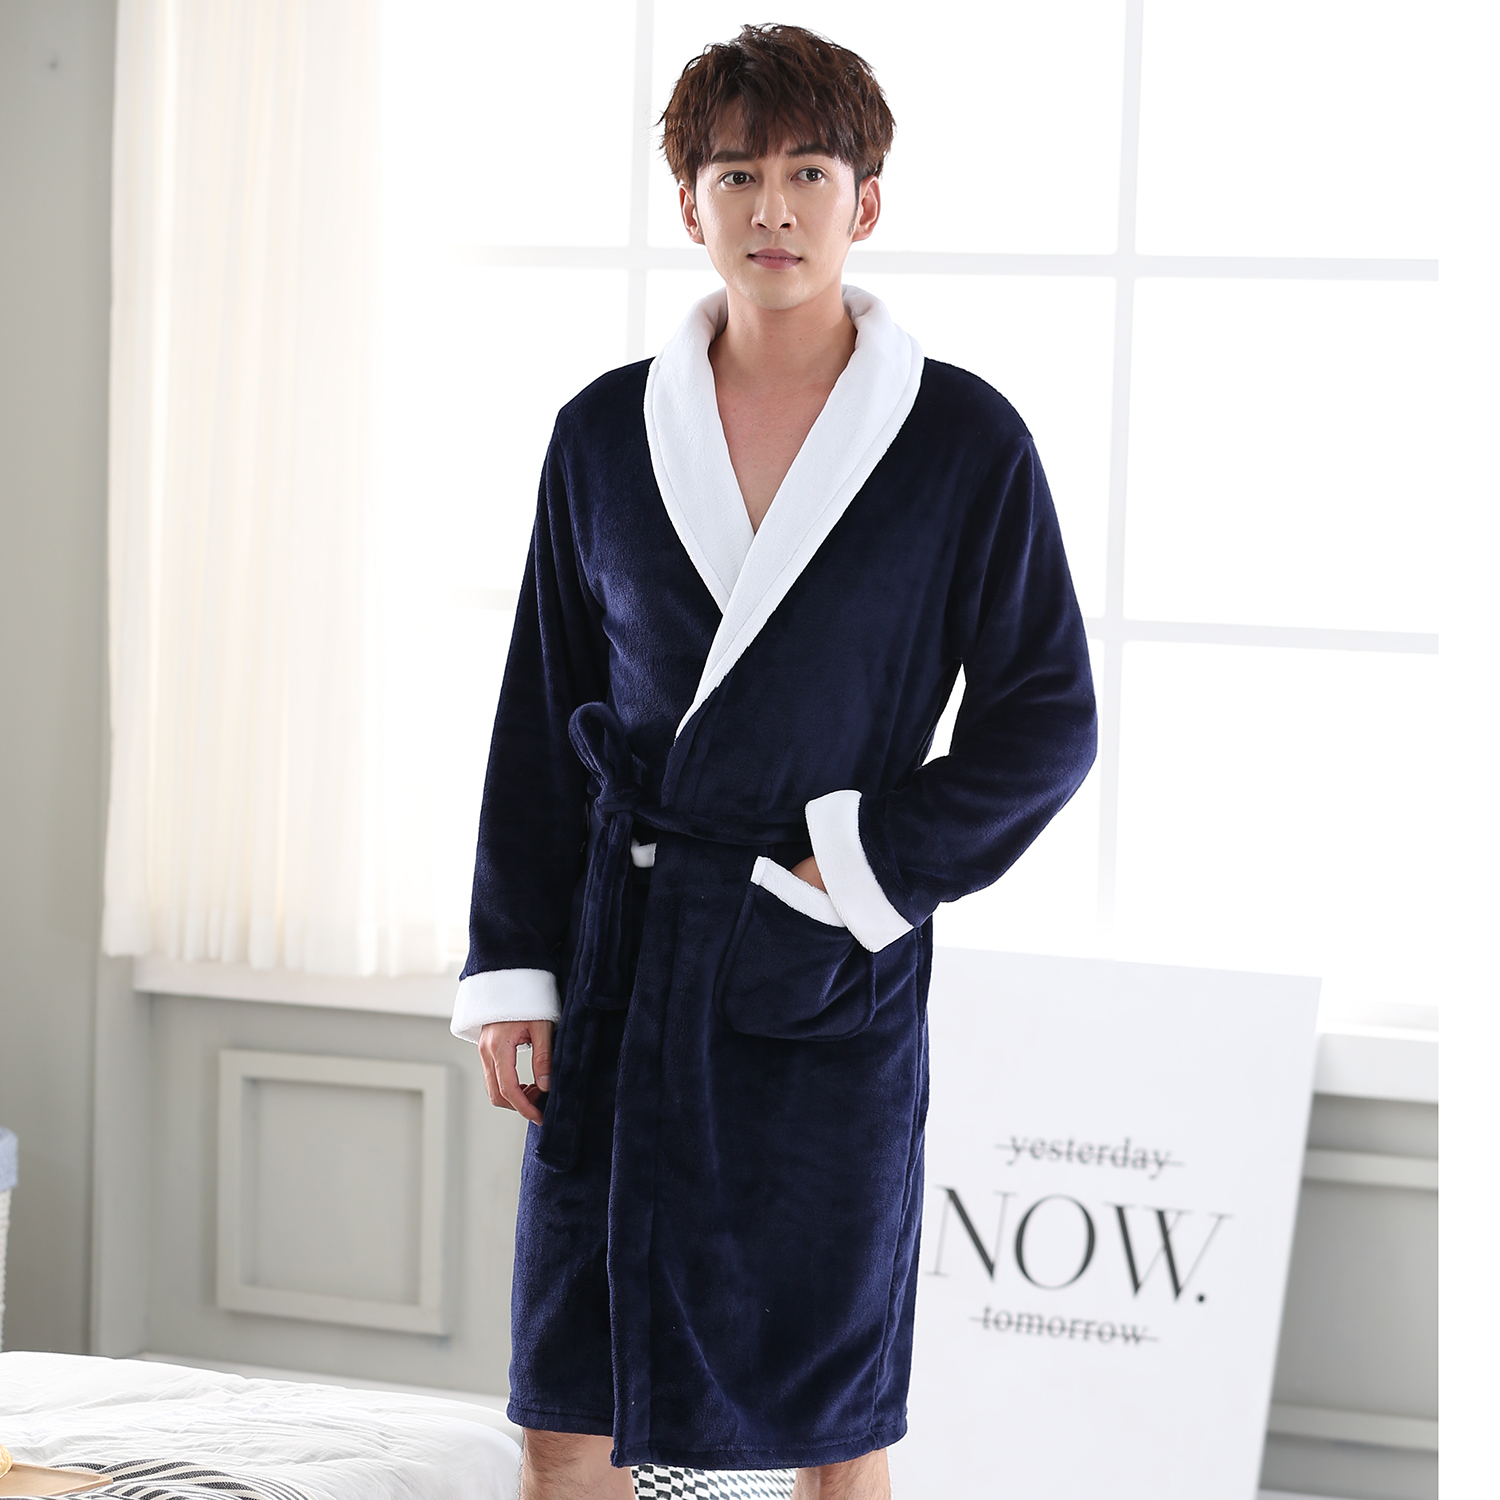 Turn-down Collar Nightgown Sleepwear For Male V-neck Full Sleeve Solid Color Robe Bathrobe Winter New Ultra Thicken Negligee